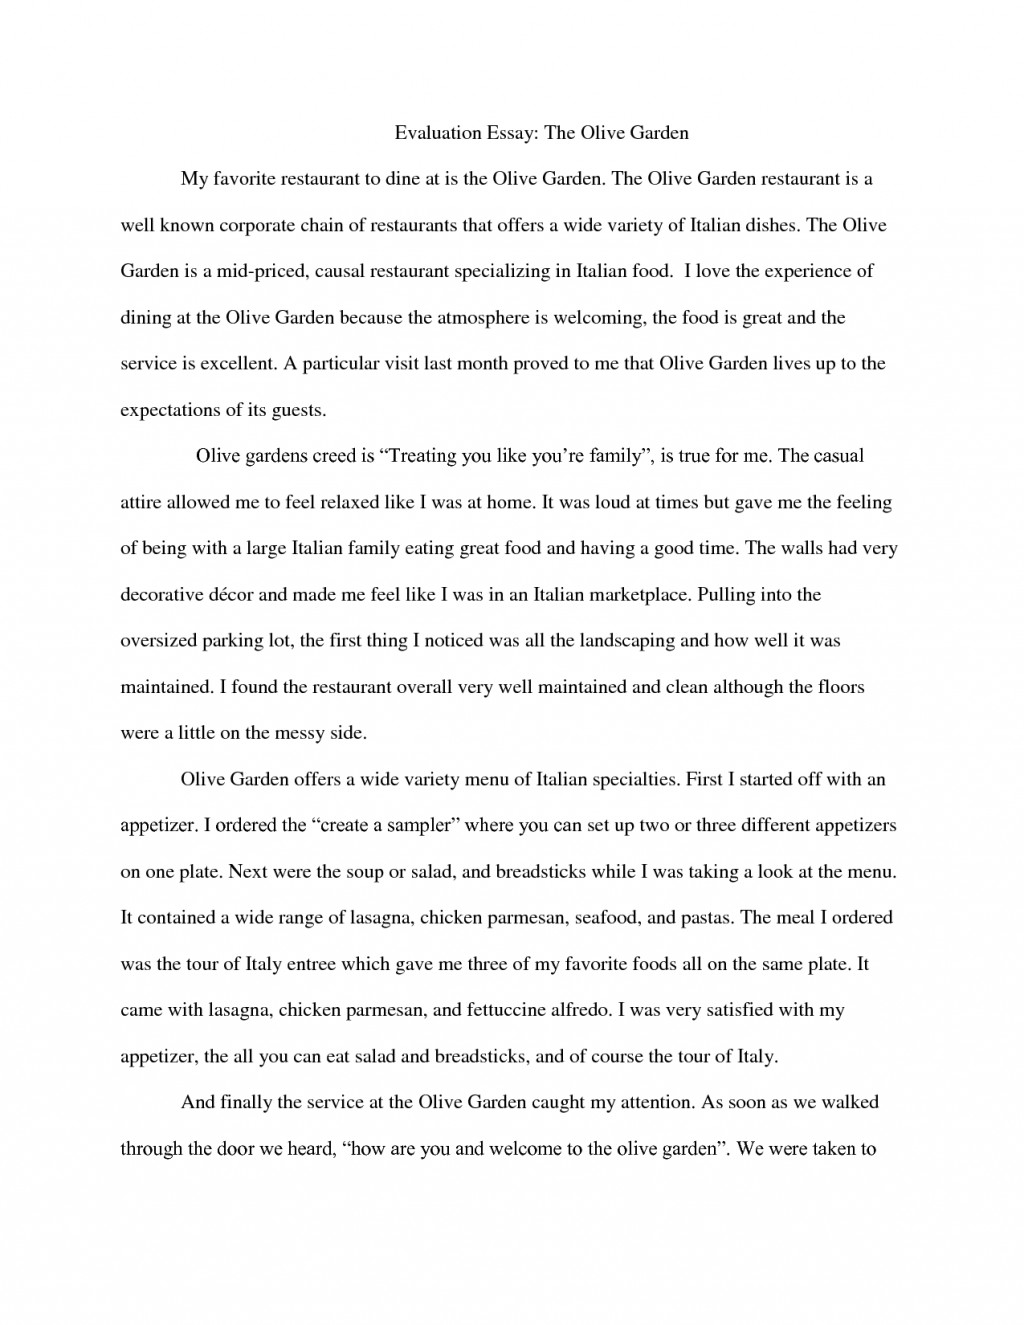 018 Essay Example Evaluation Topics How Write Self Examples Sample Assessment Essays On Movie Analysis Thesis Criteria Music Film For College Free Restaurant Awful Questions With Large